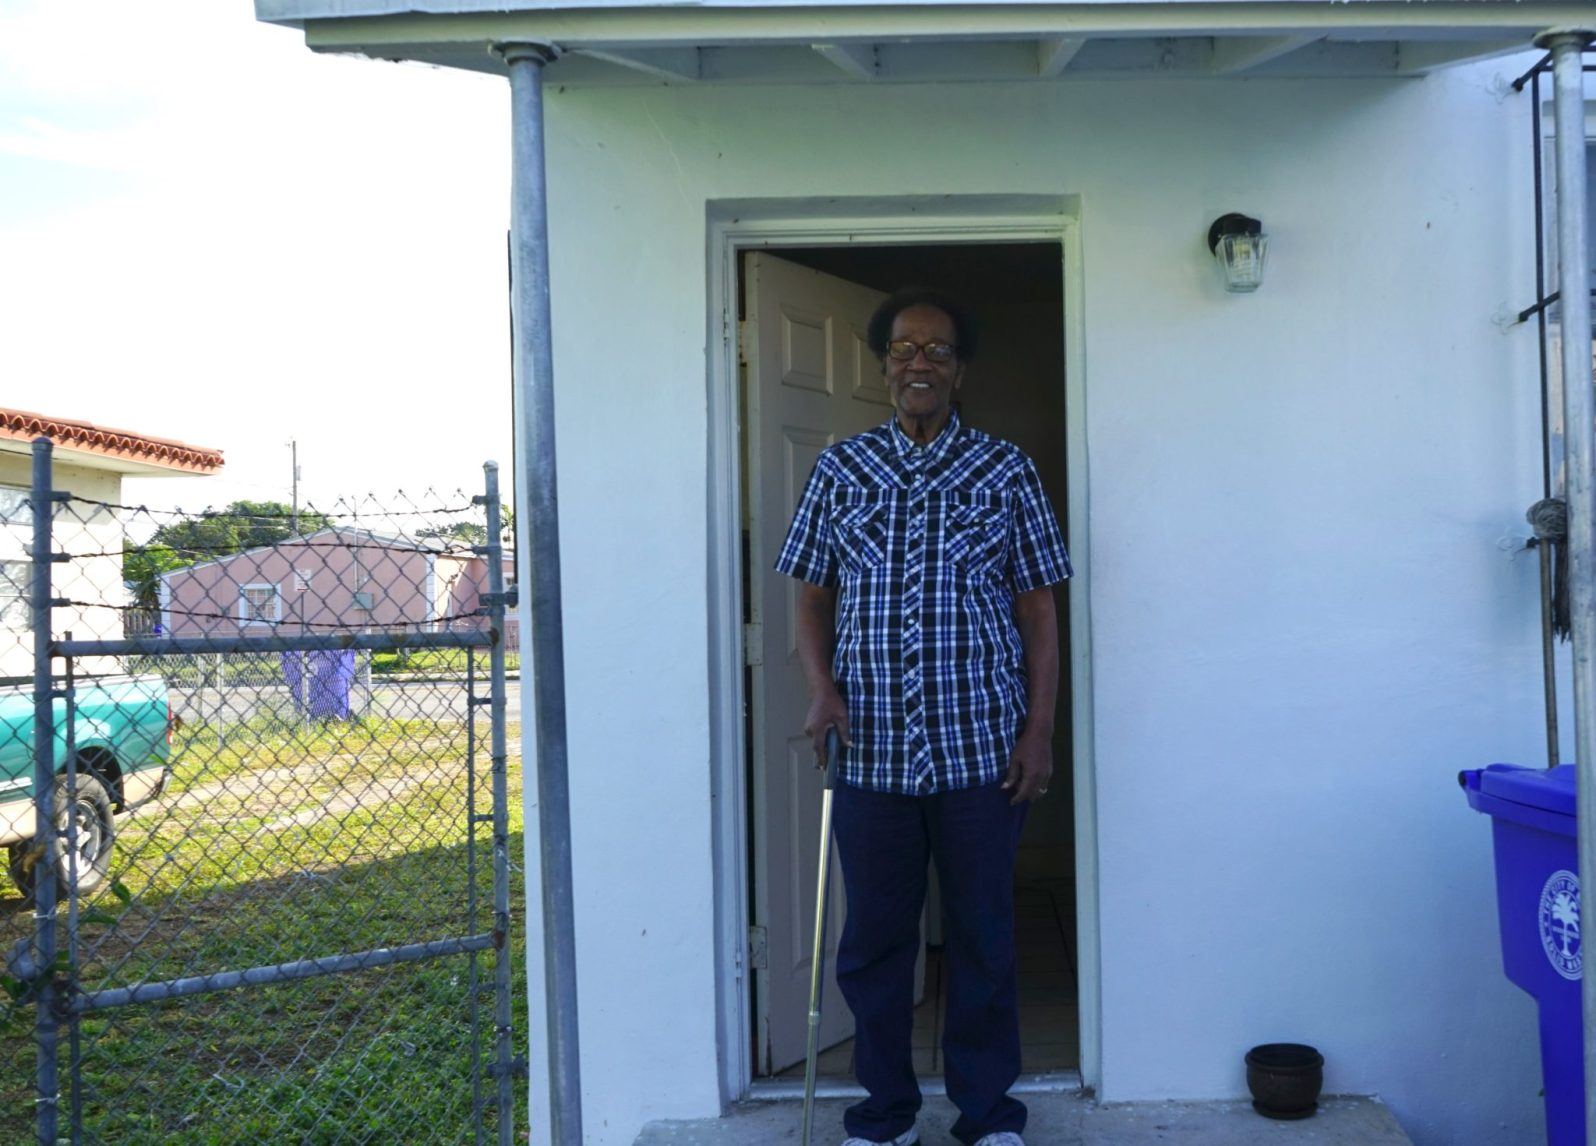 James Howard, Jr. lives in a quaint, two story white house in Liberty City. His daughter Bereatha wants to make sure he is prepared for climate change. (Credit: Roshan Nebhrajani/The New Tropic)